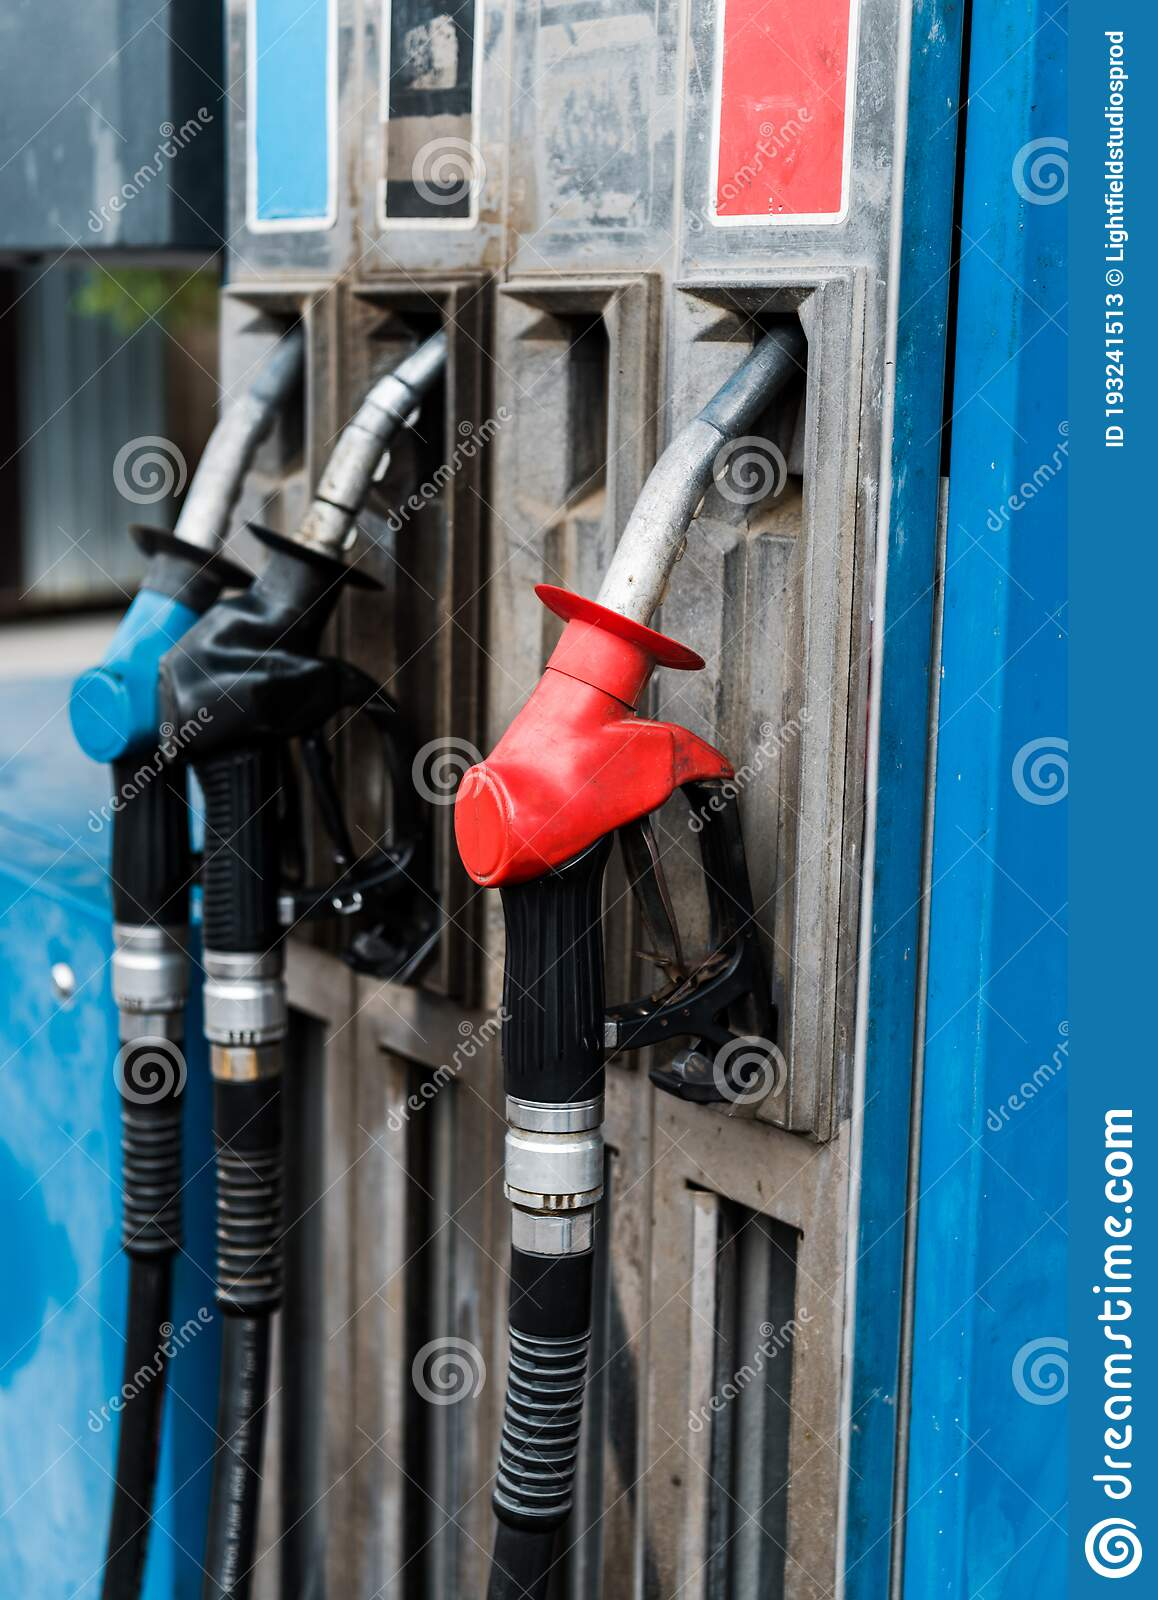 1 883 Blue Gas Pumps Photos Free Royalty Free Stock Photos From Dreamstime